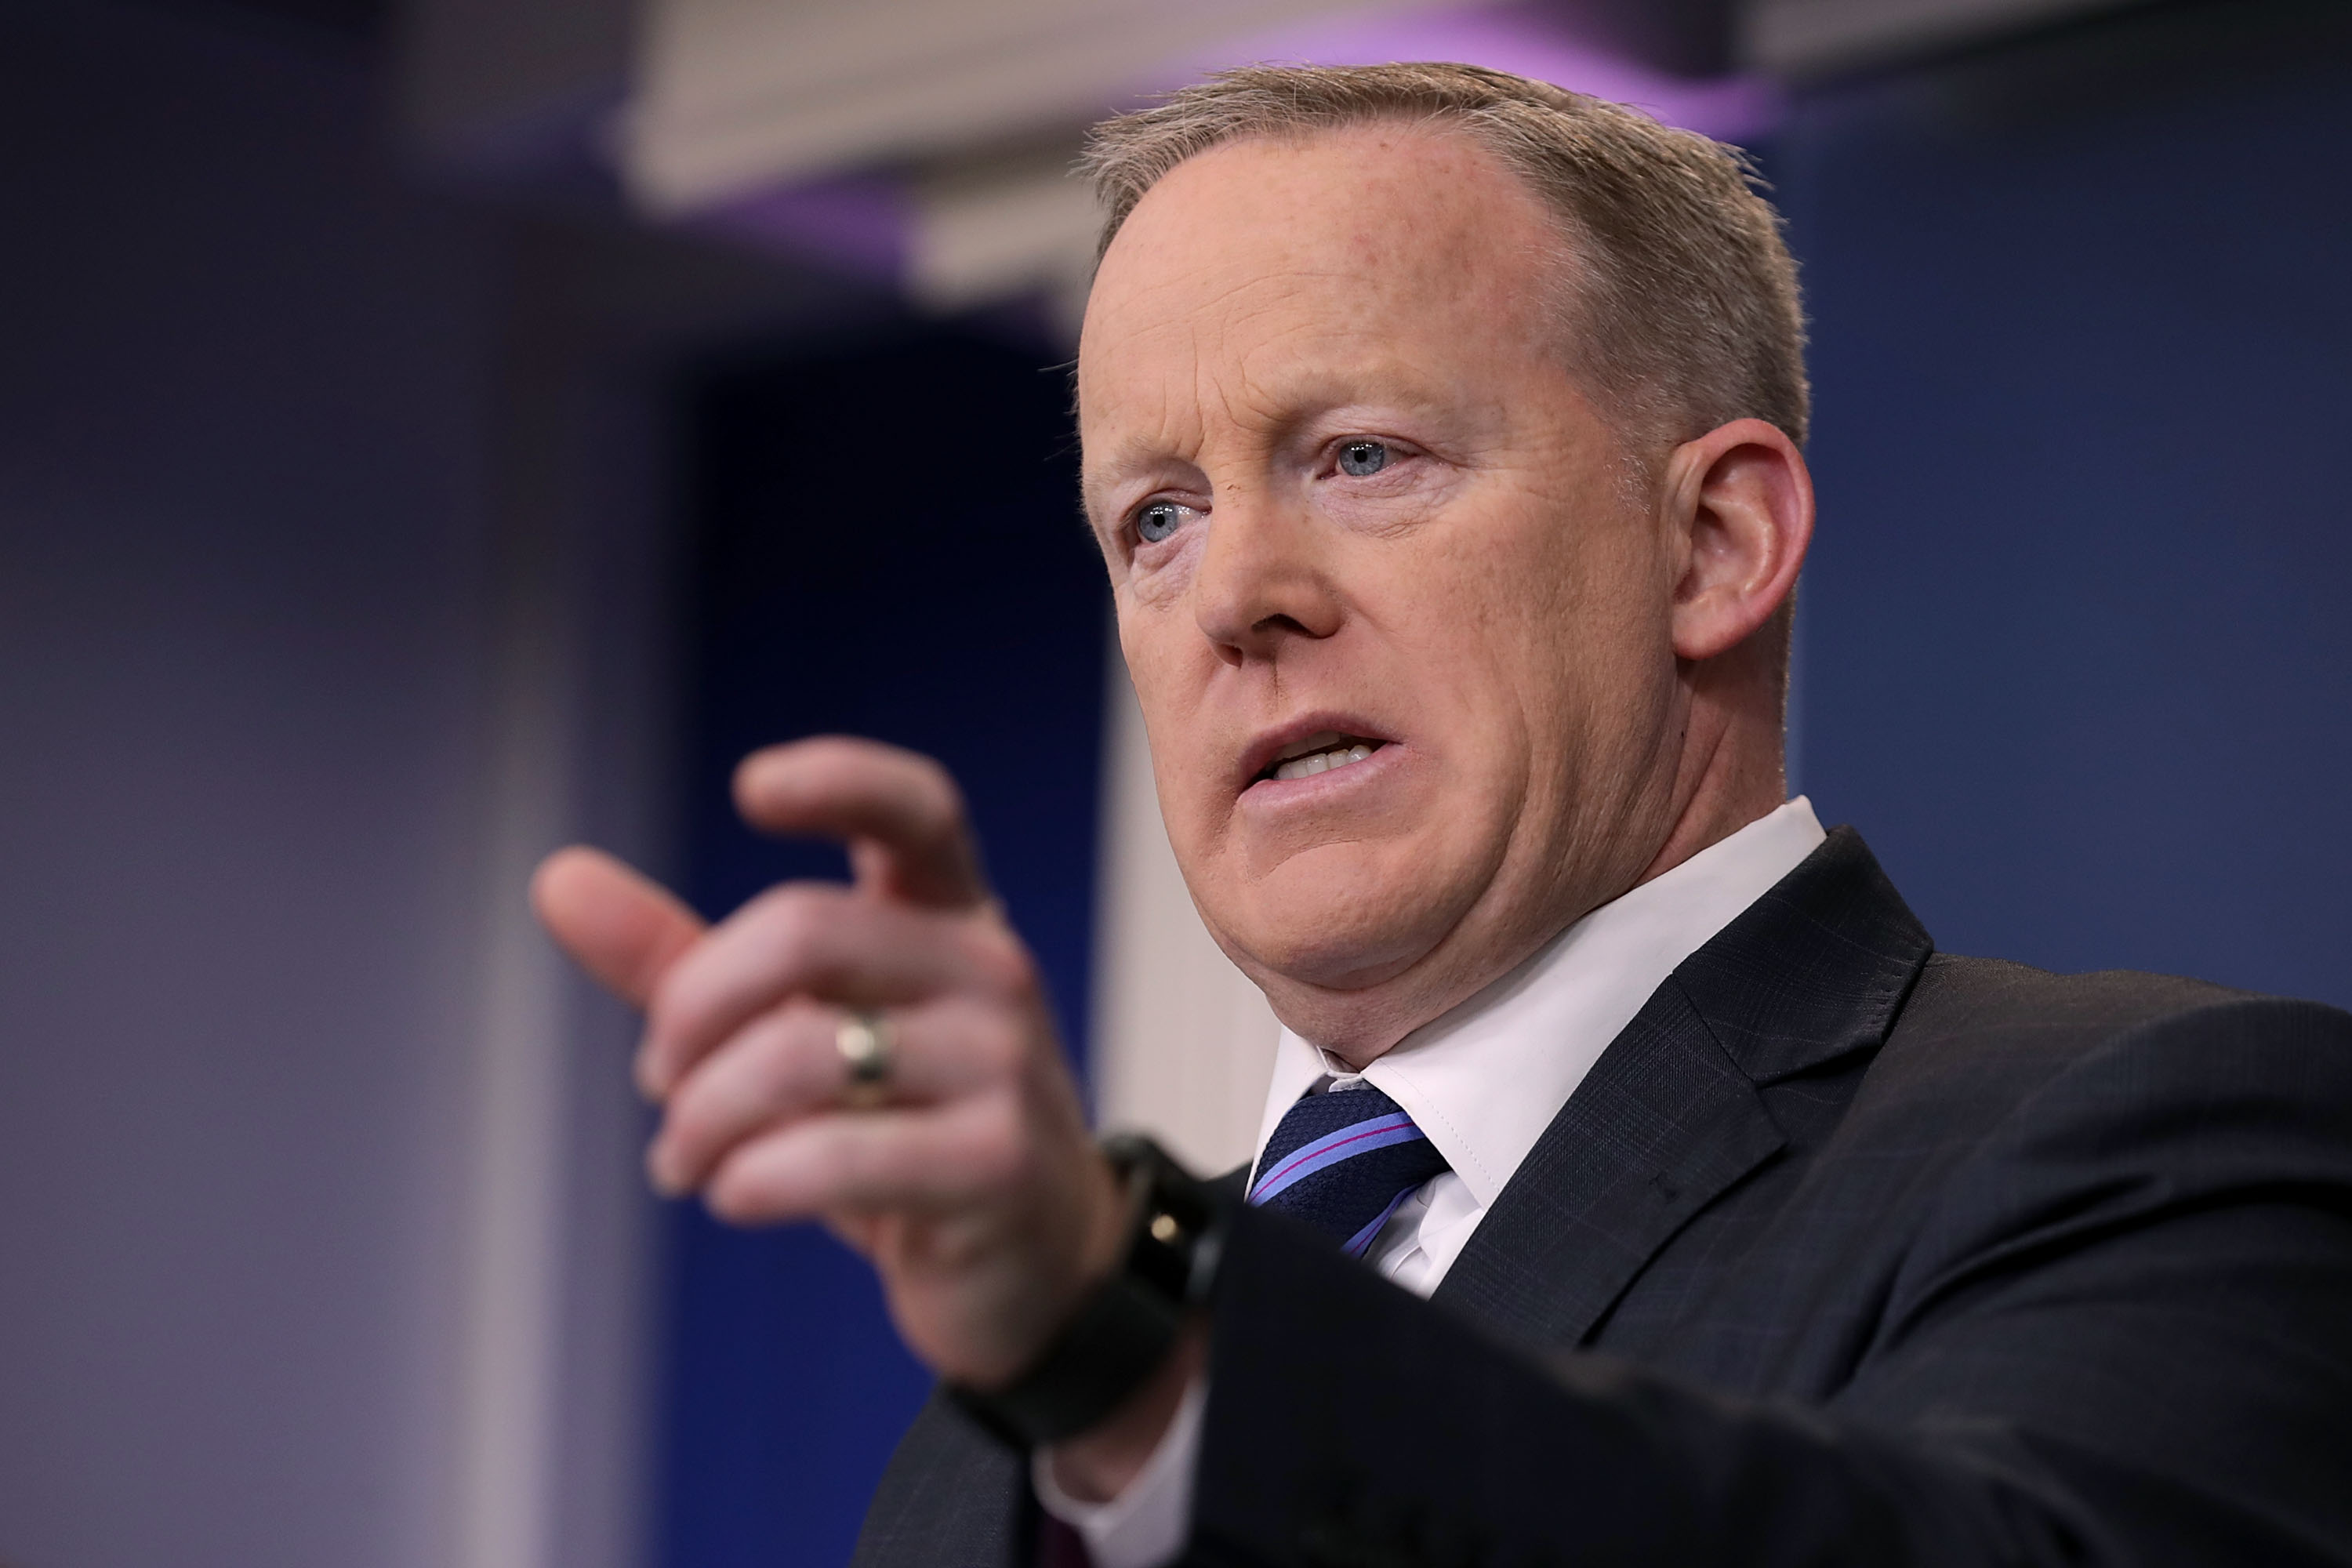 Sean Spicer can't possibly mean what he just said about Syria. Can he?